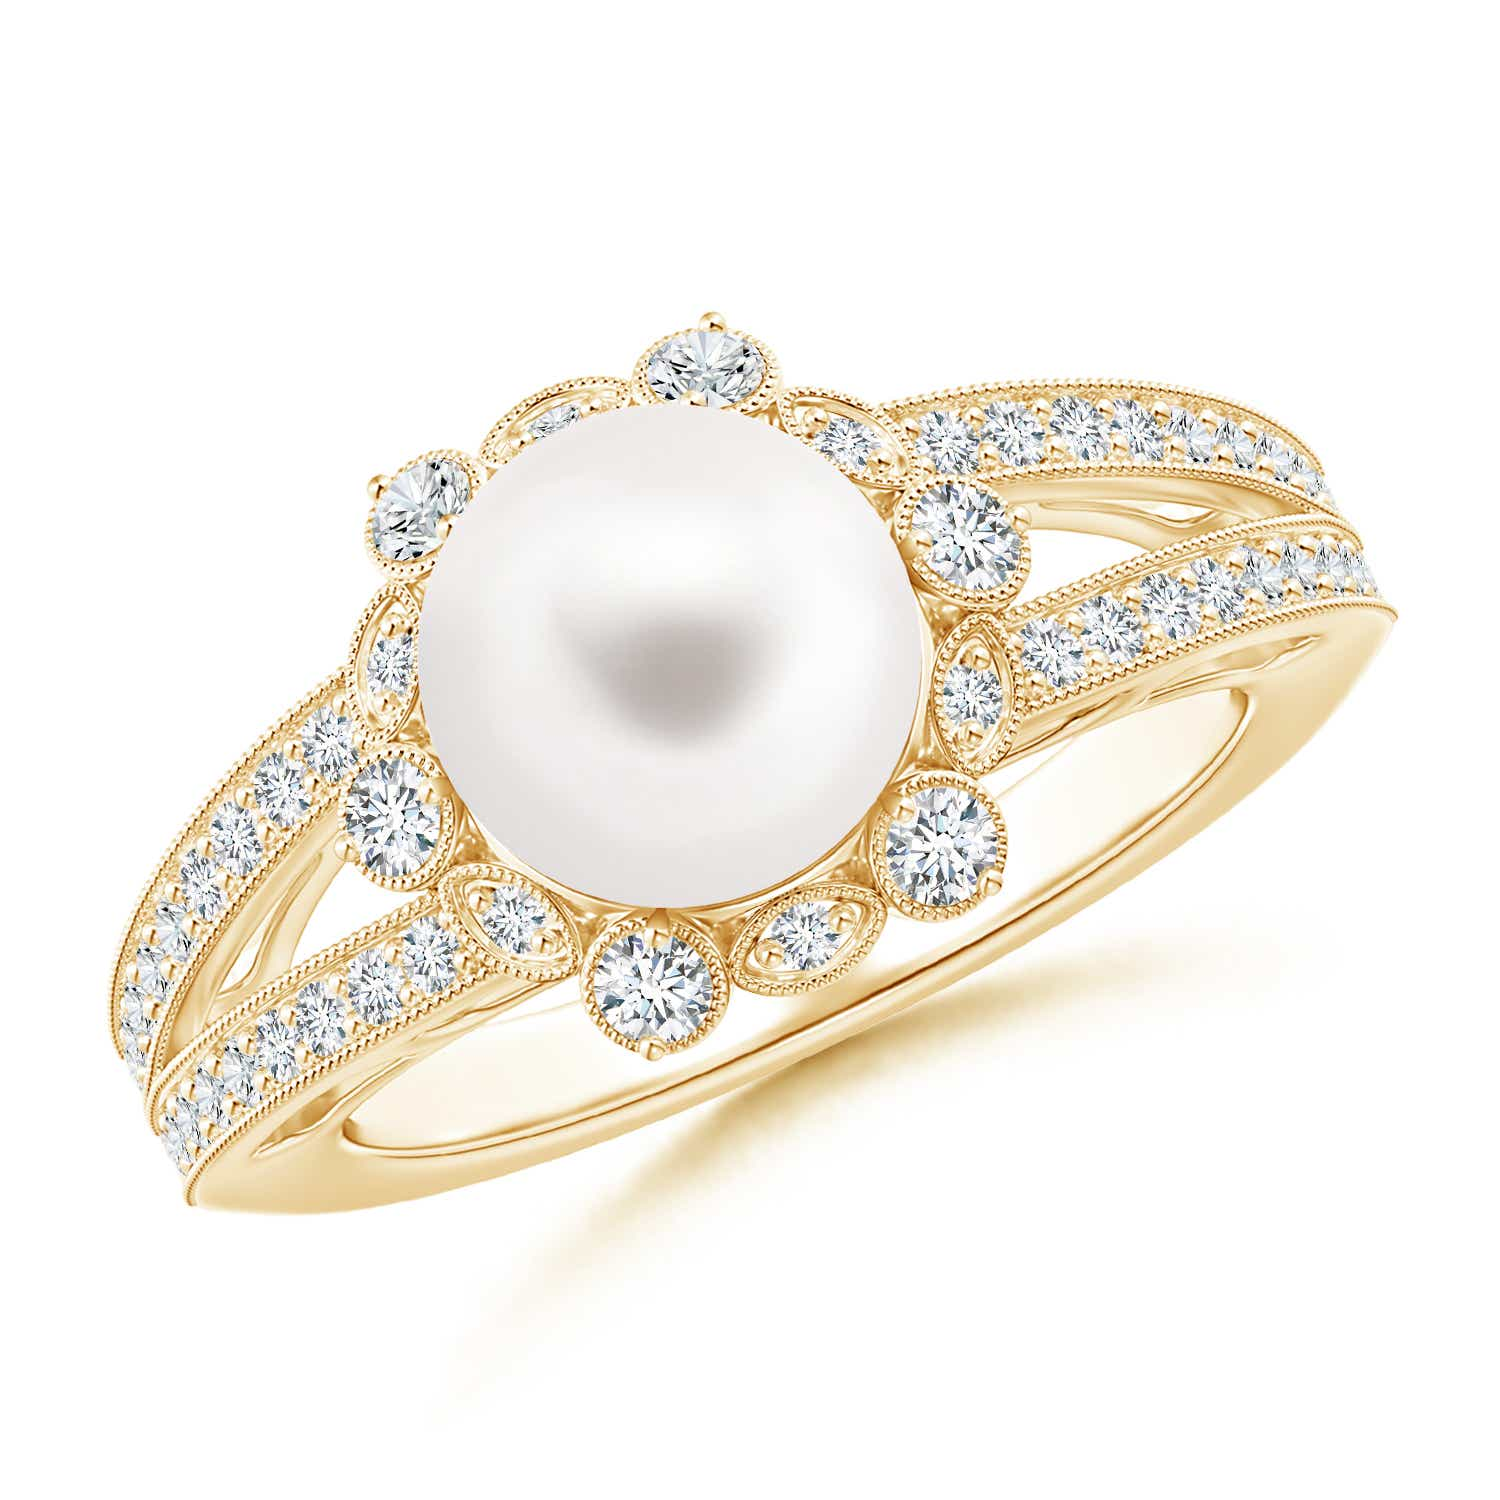 Angara Freshwater Cultured Pearl Halo Ring with Milgrain XfZTfNe7dQ